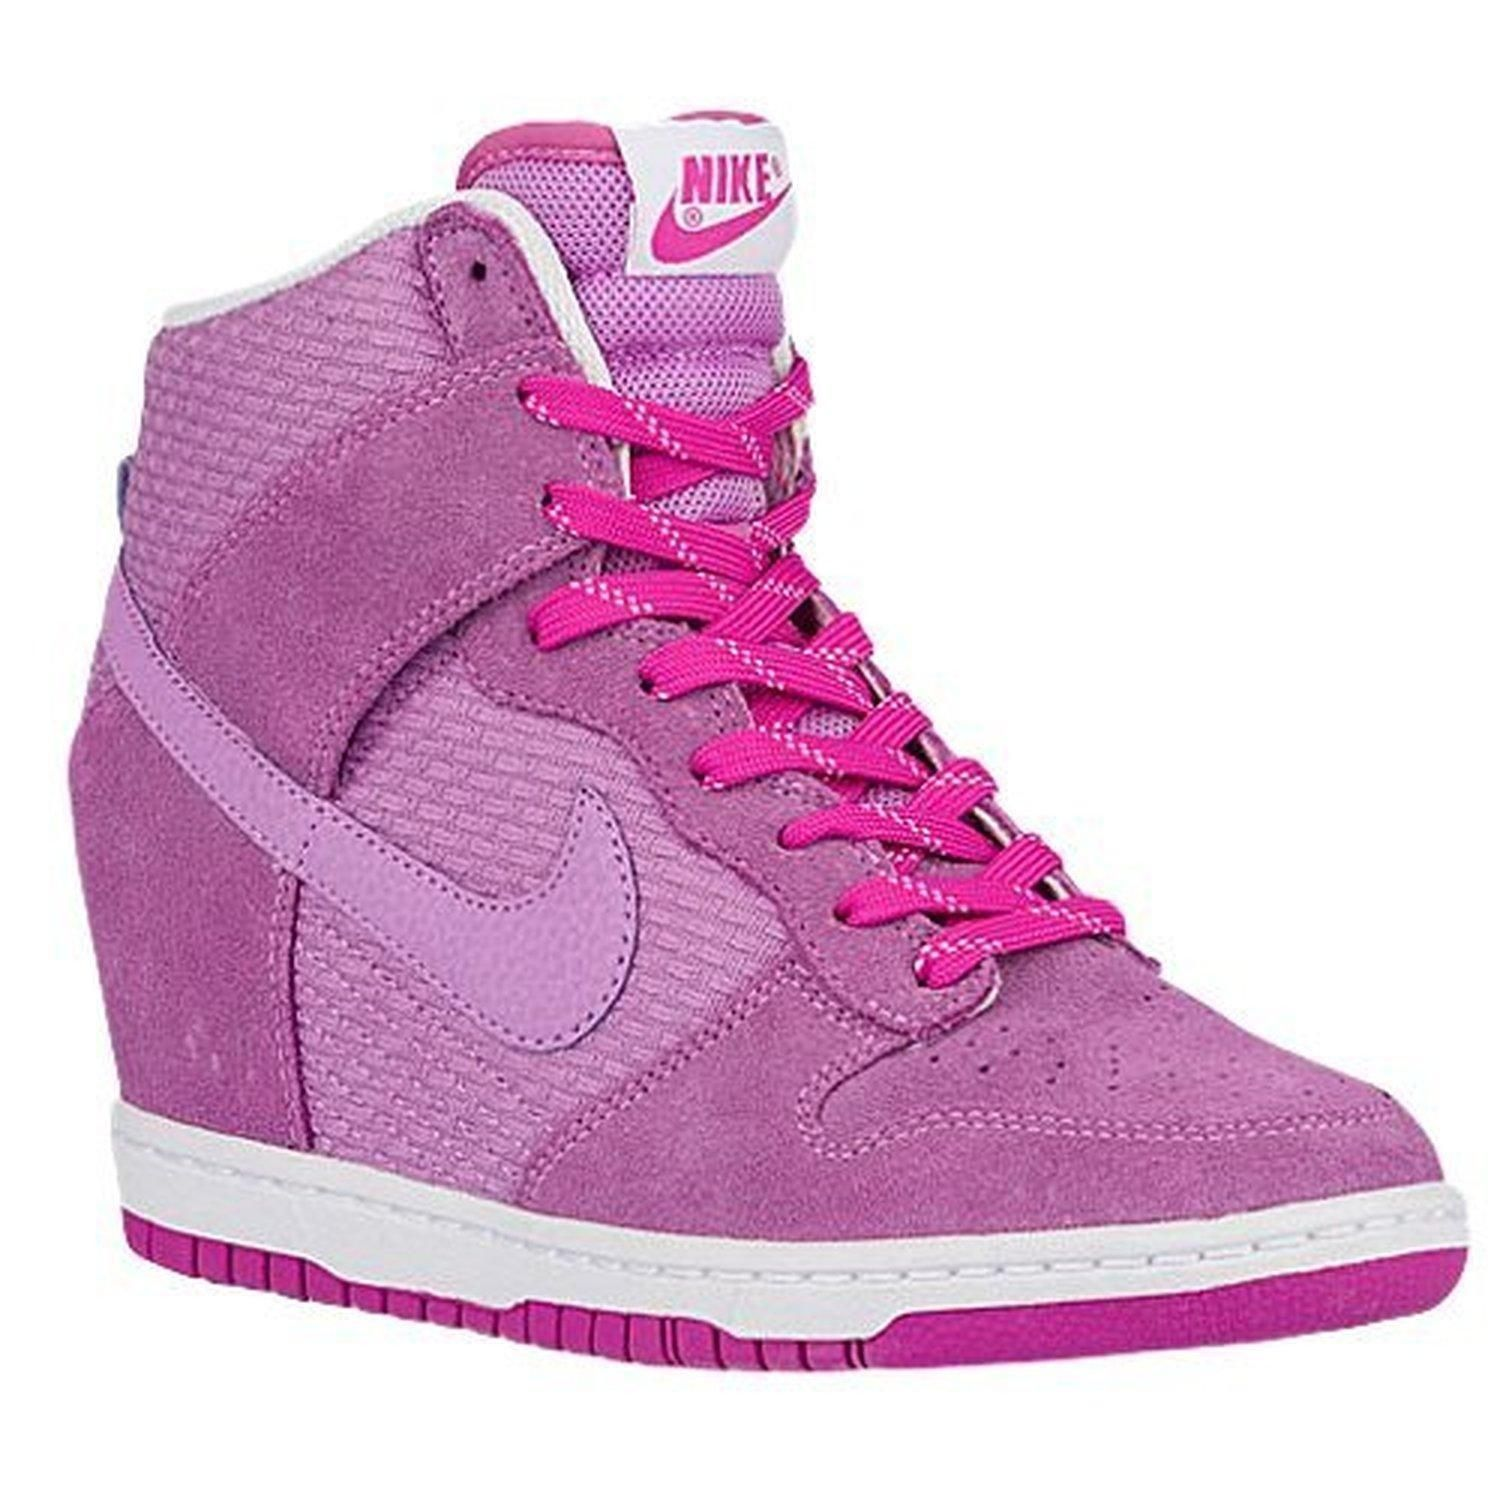 new arrival 5aac7 8926f Nike Dunk Sky Hi Essential Women s Fuchsia 644877-500 (SIZE  7) - Brought  to you by Avarsha.com